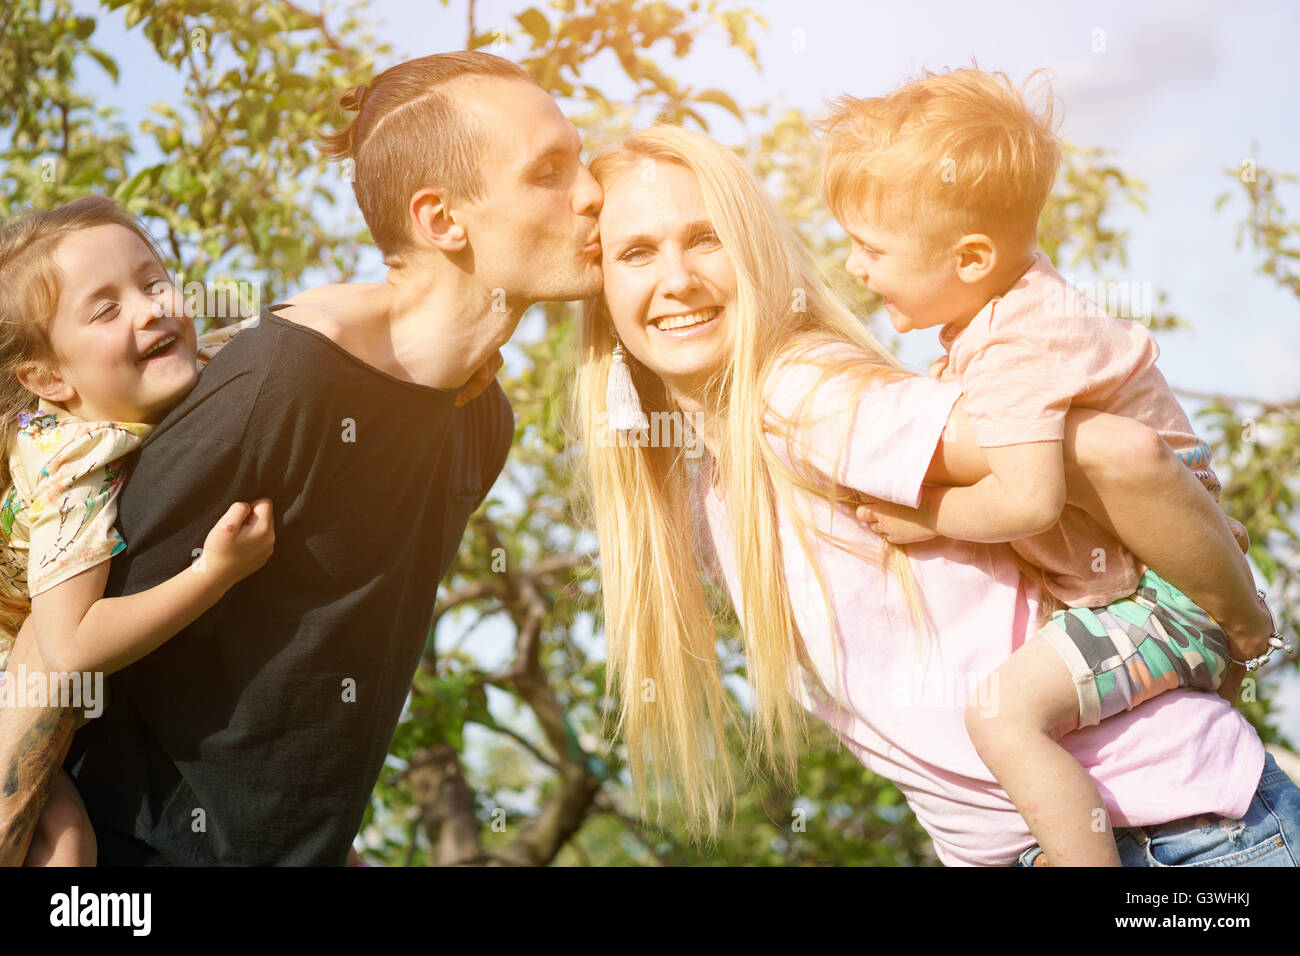 Portrait of a happy family outdoors - Stock Image